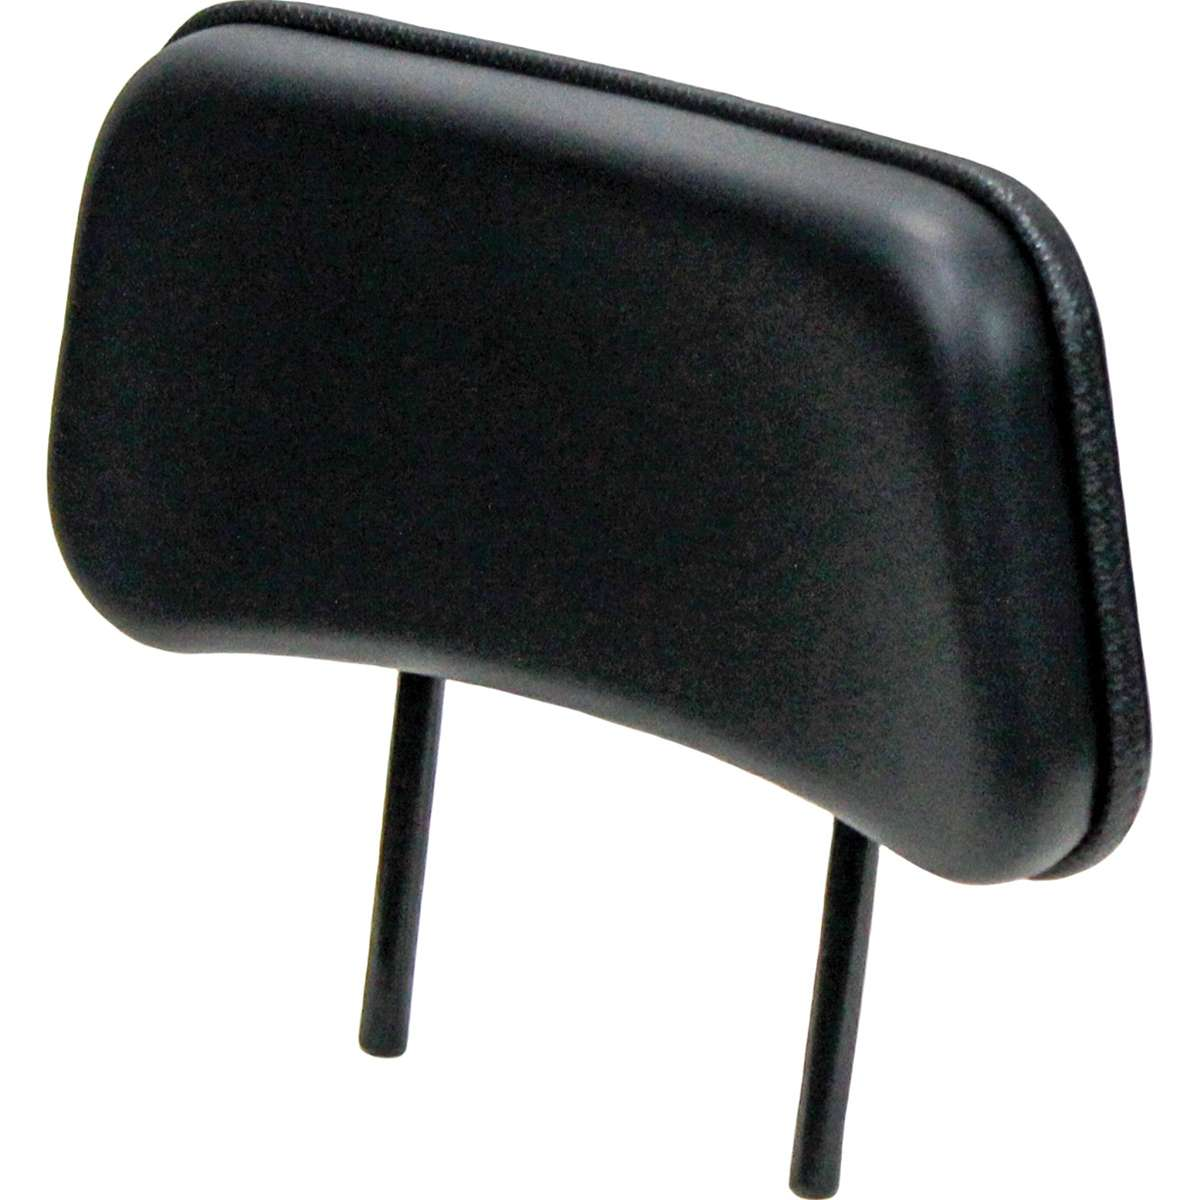 KM 239 Headrest Cushion